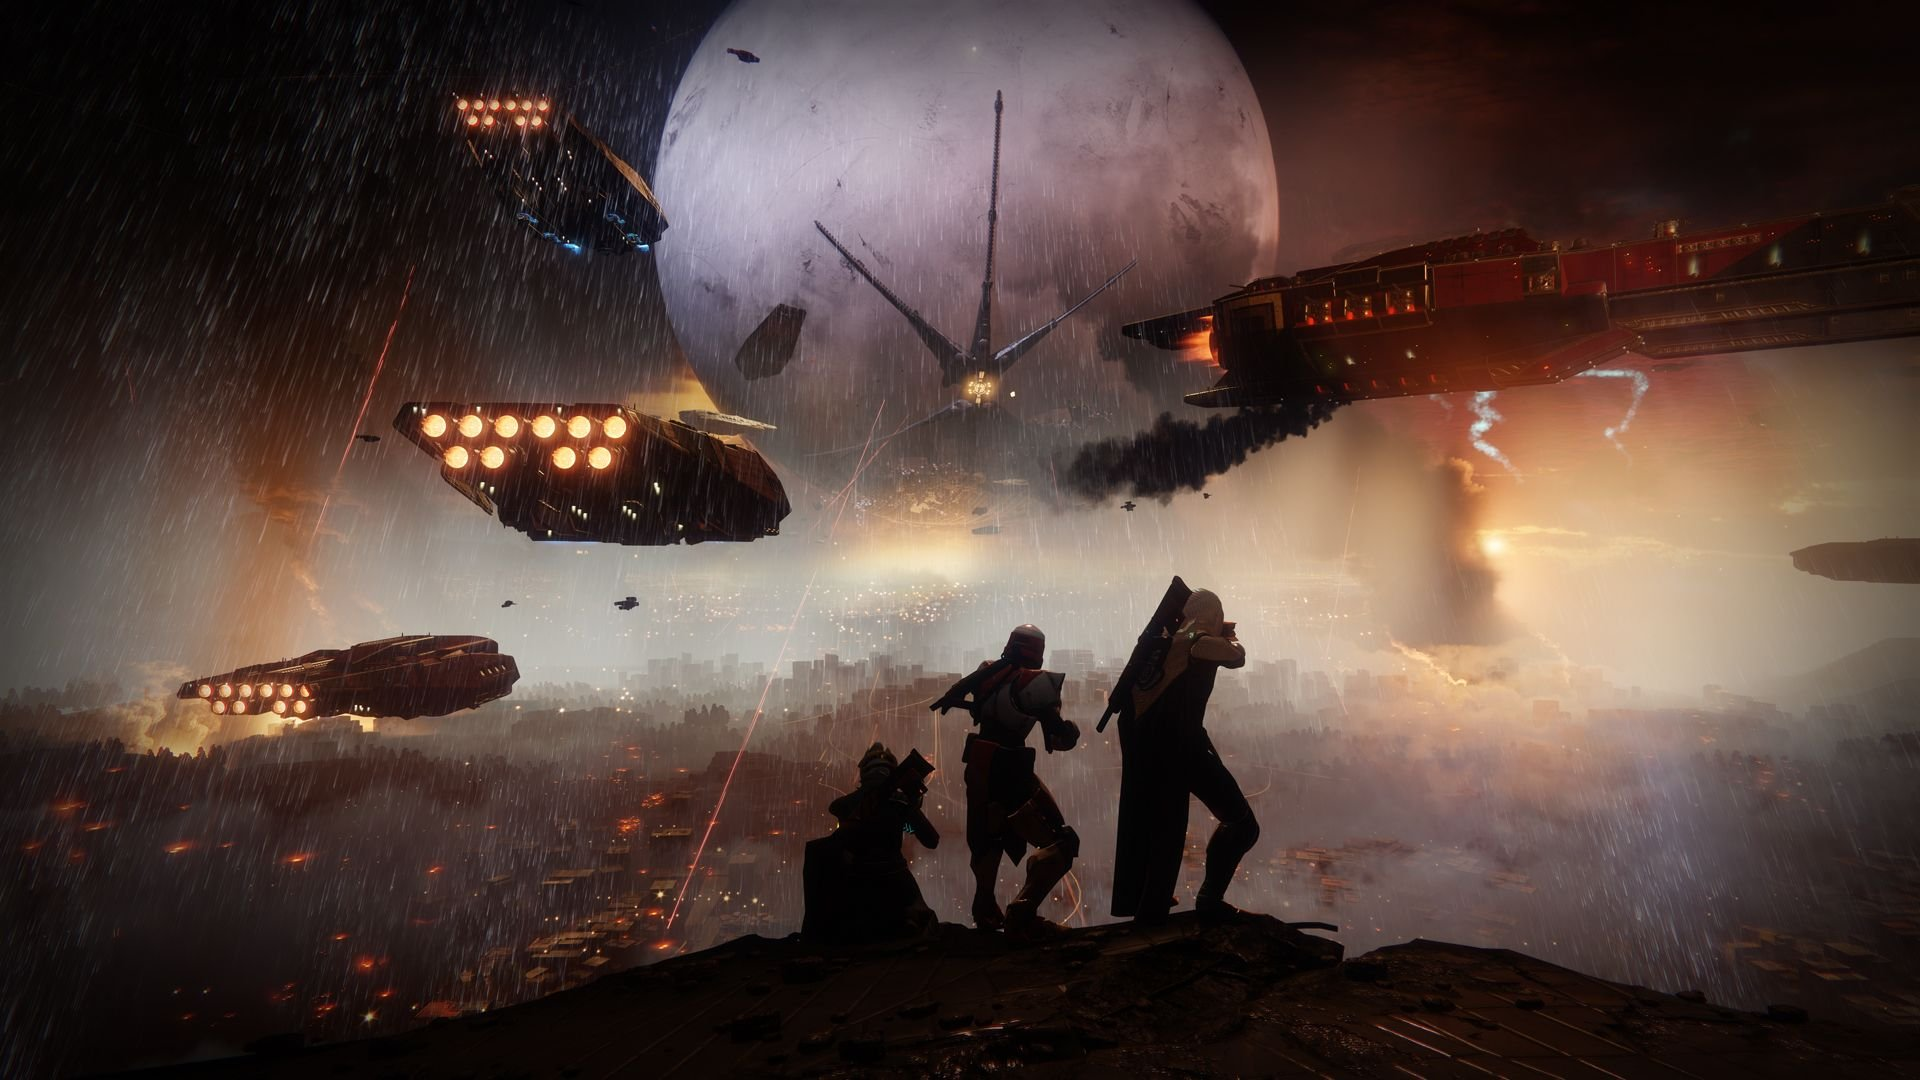 Here are a few of the rewards returning Destiny players will get in Destiny 2 screenshot